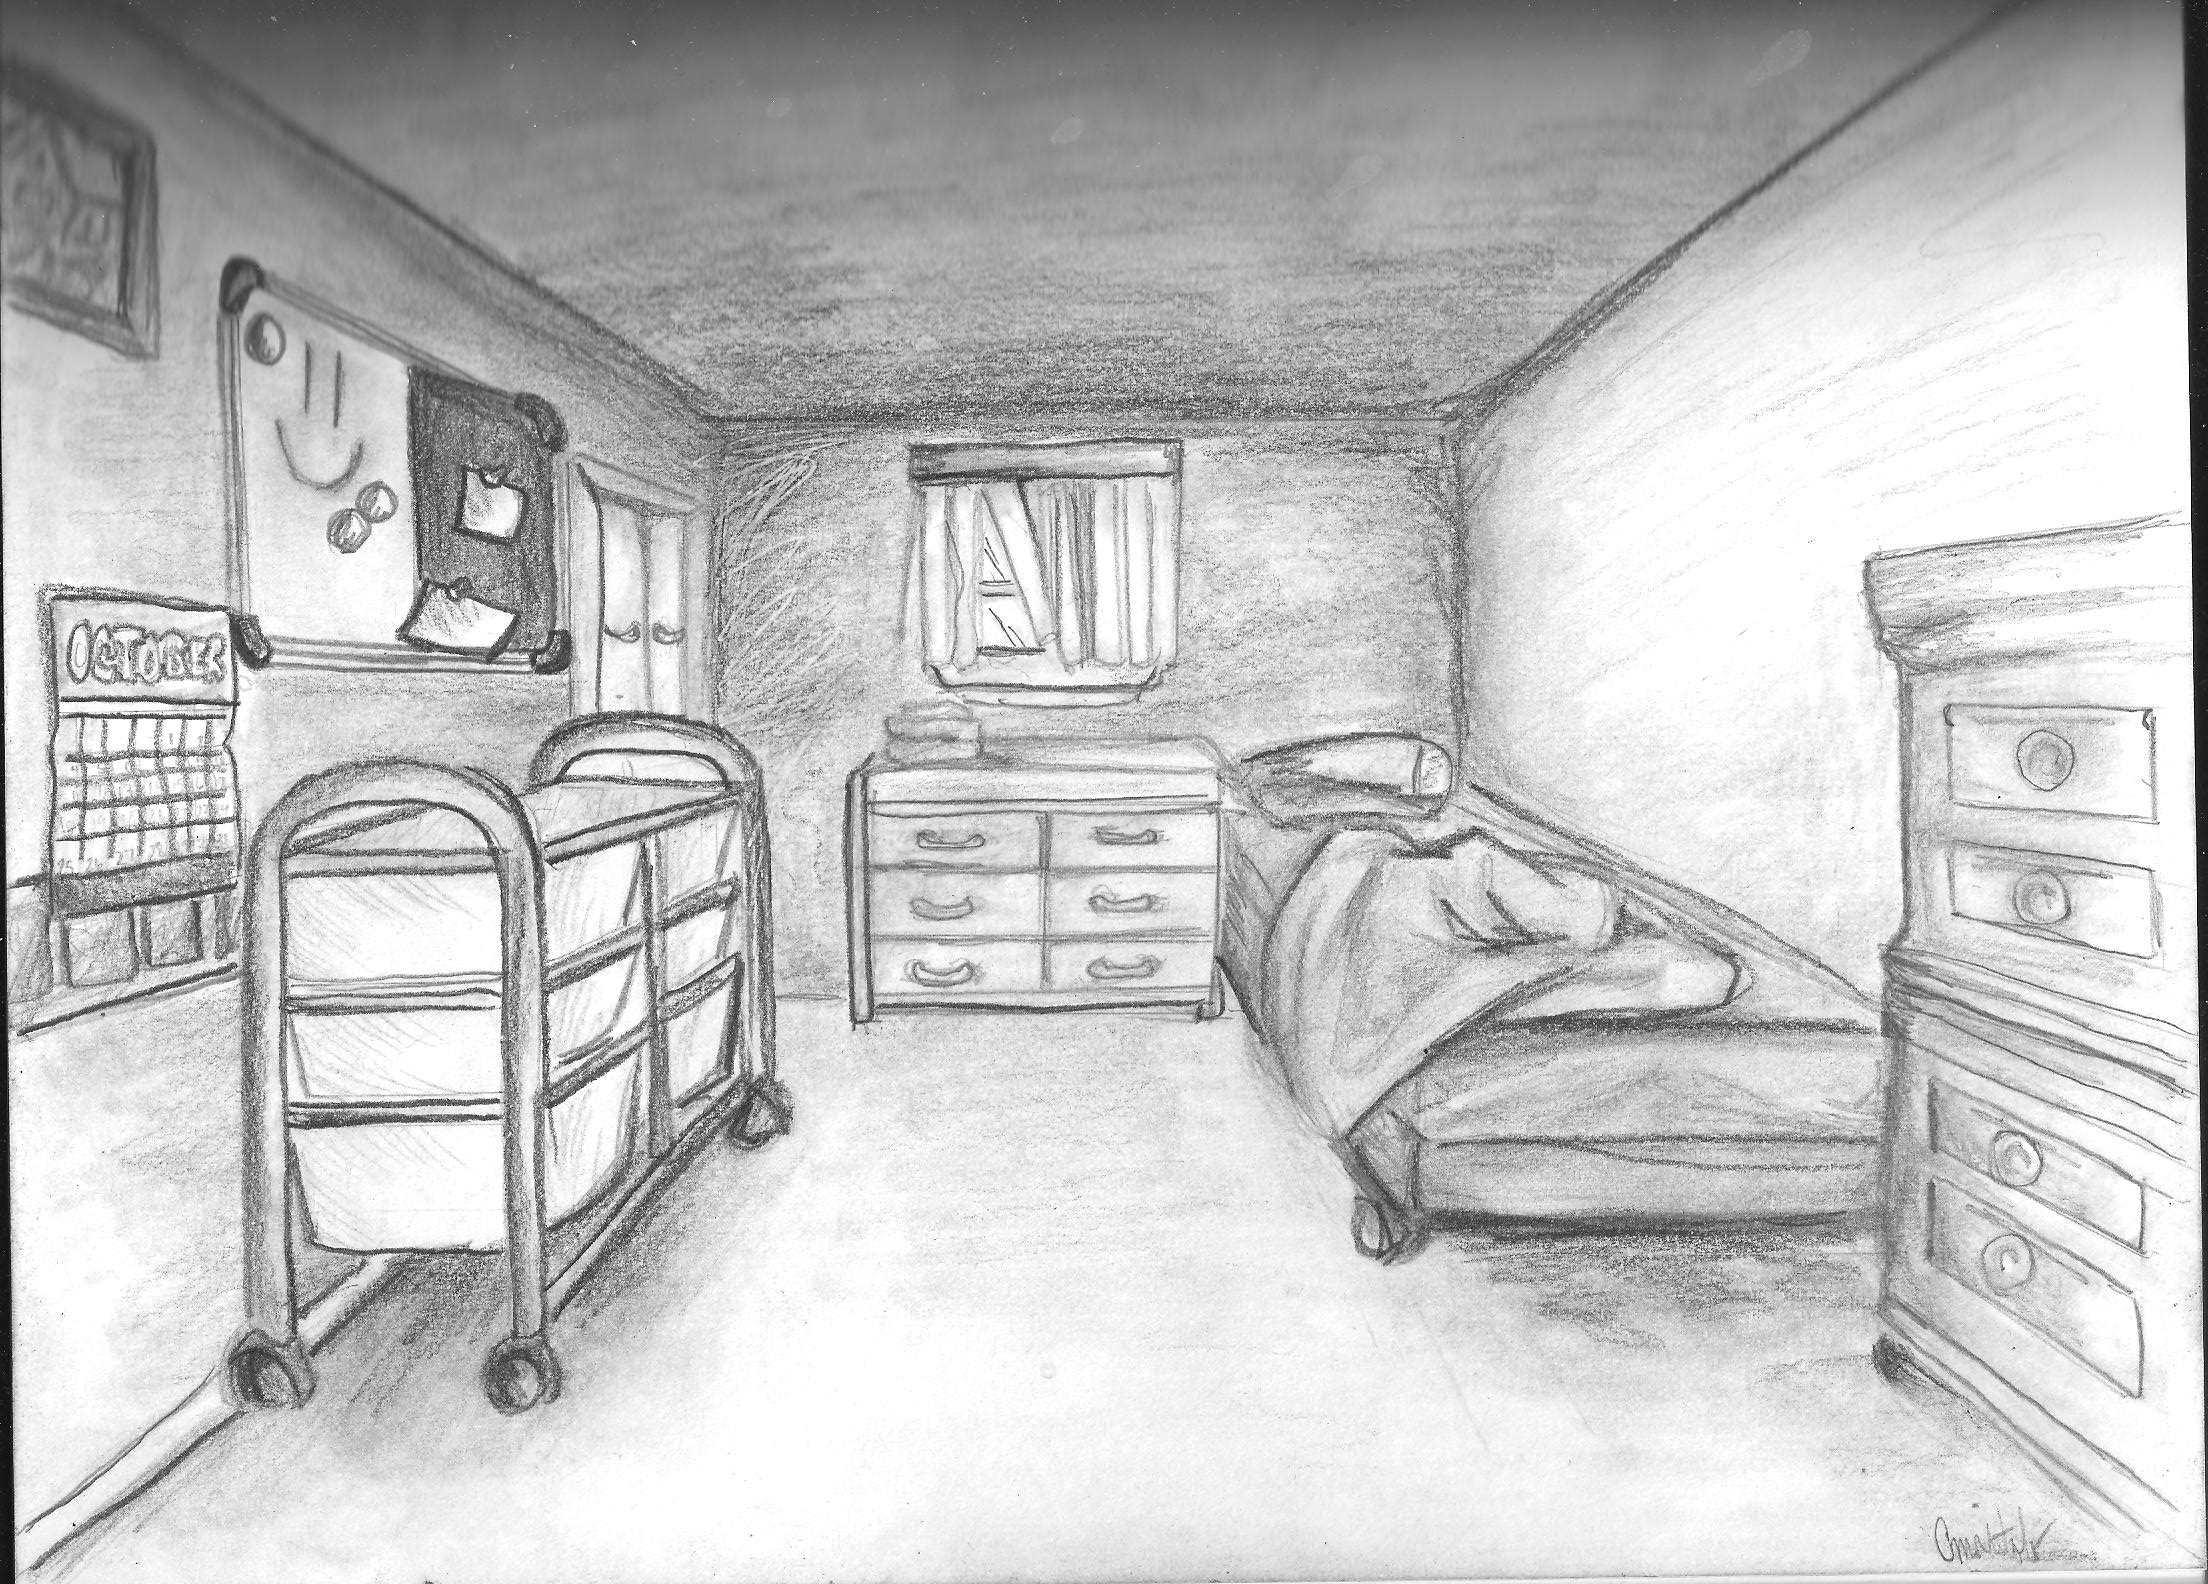 Drawn bedroom black and white Perspective Drawing ~ point room